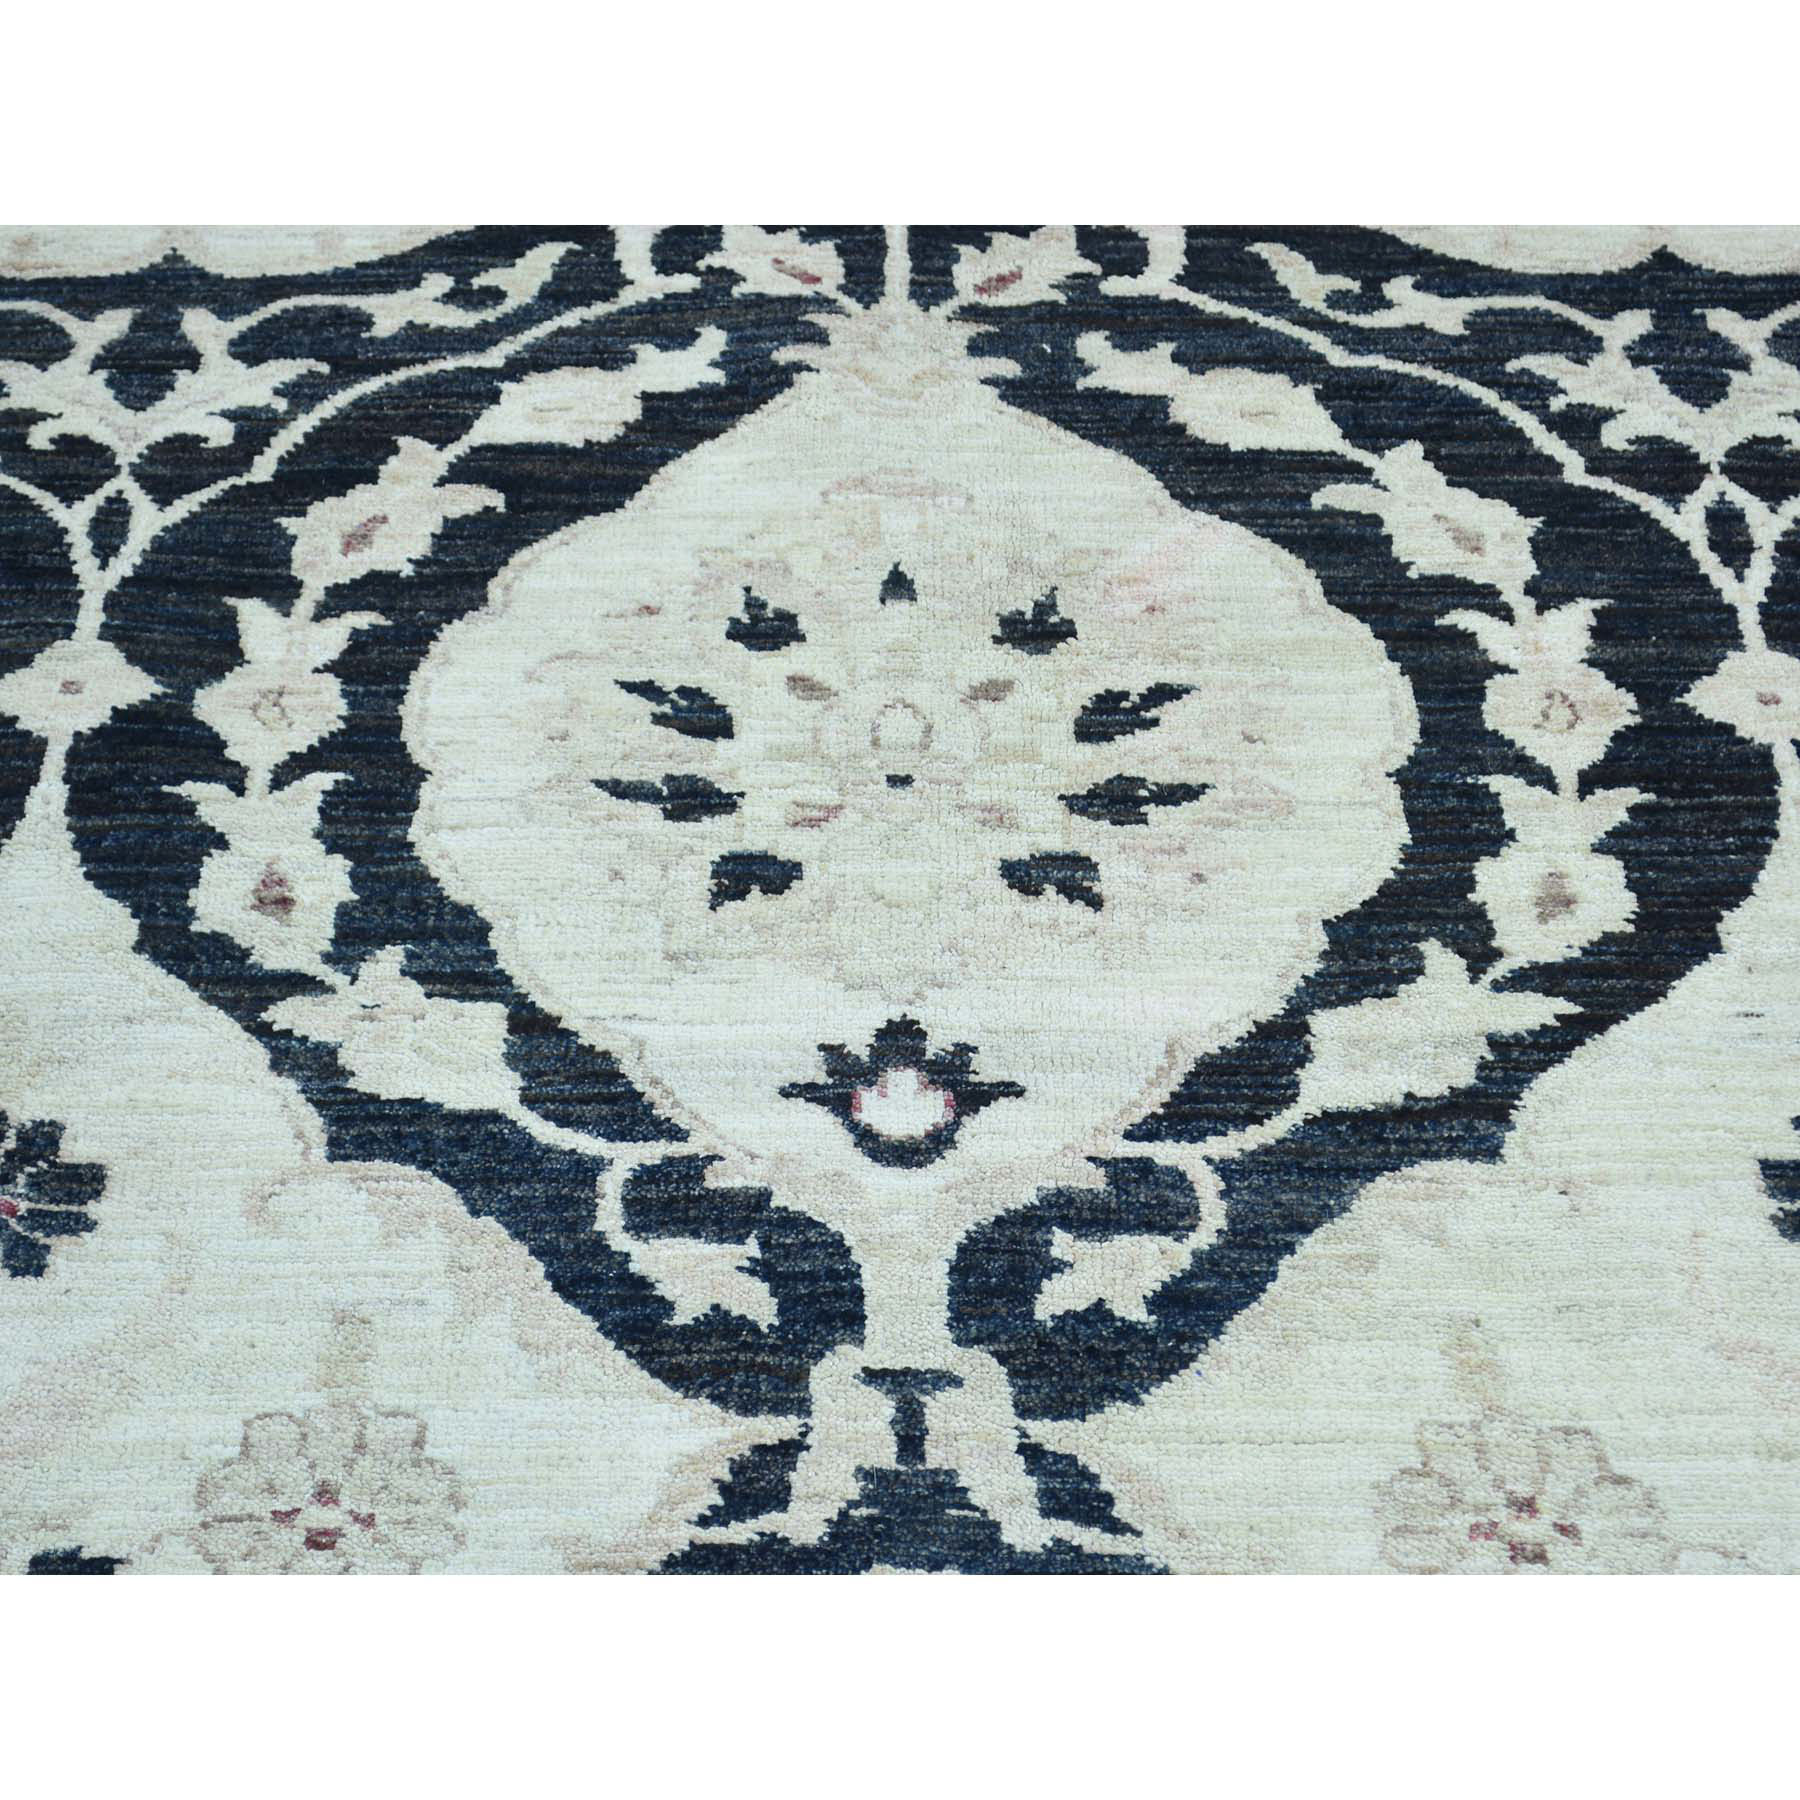 10-x13-8  Hand-Knotted Peshawar With Moughal Design Oriental Rug